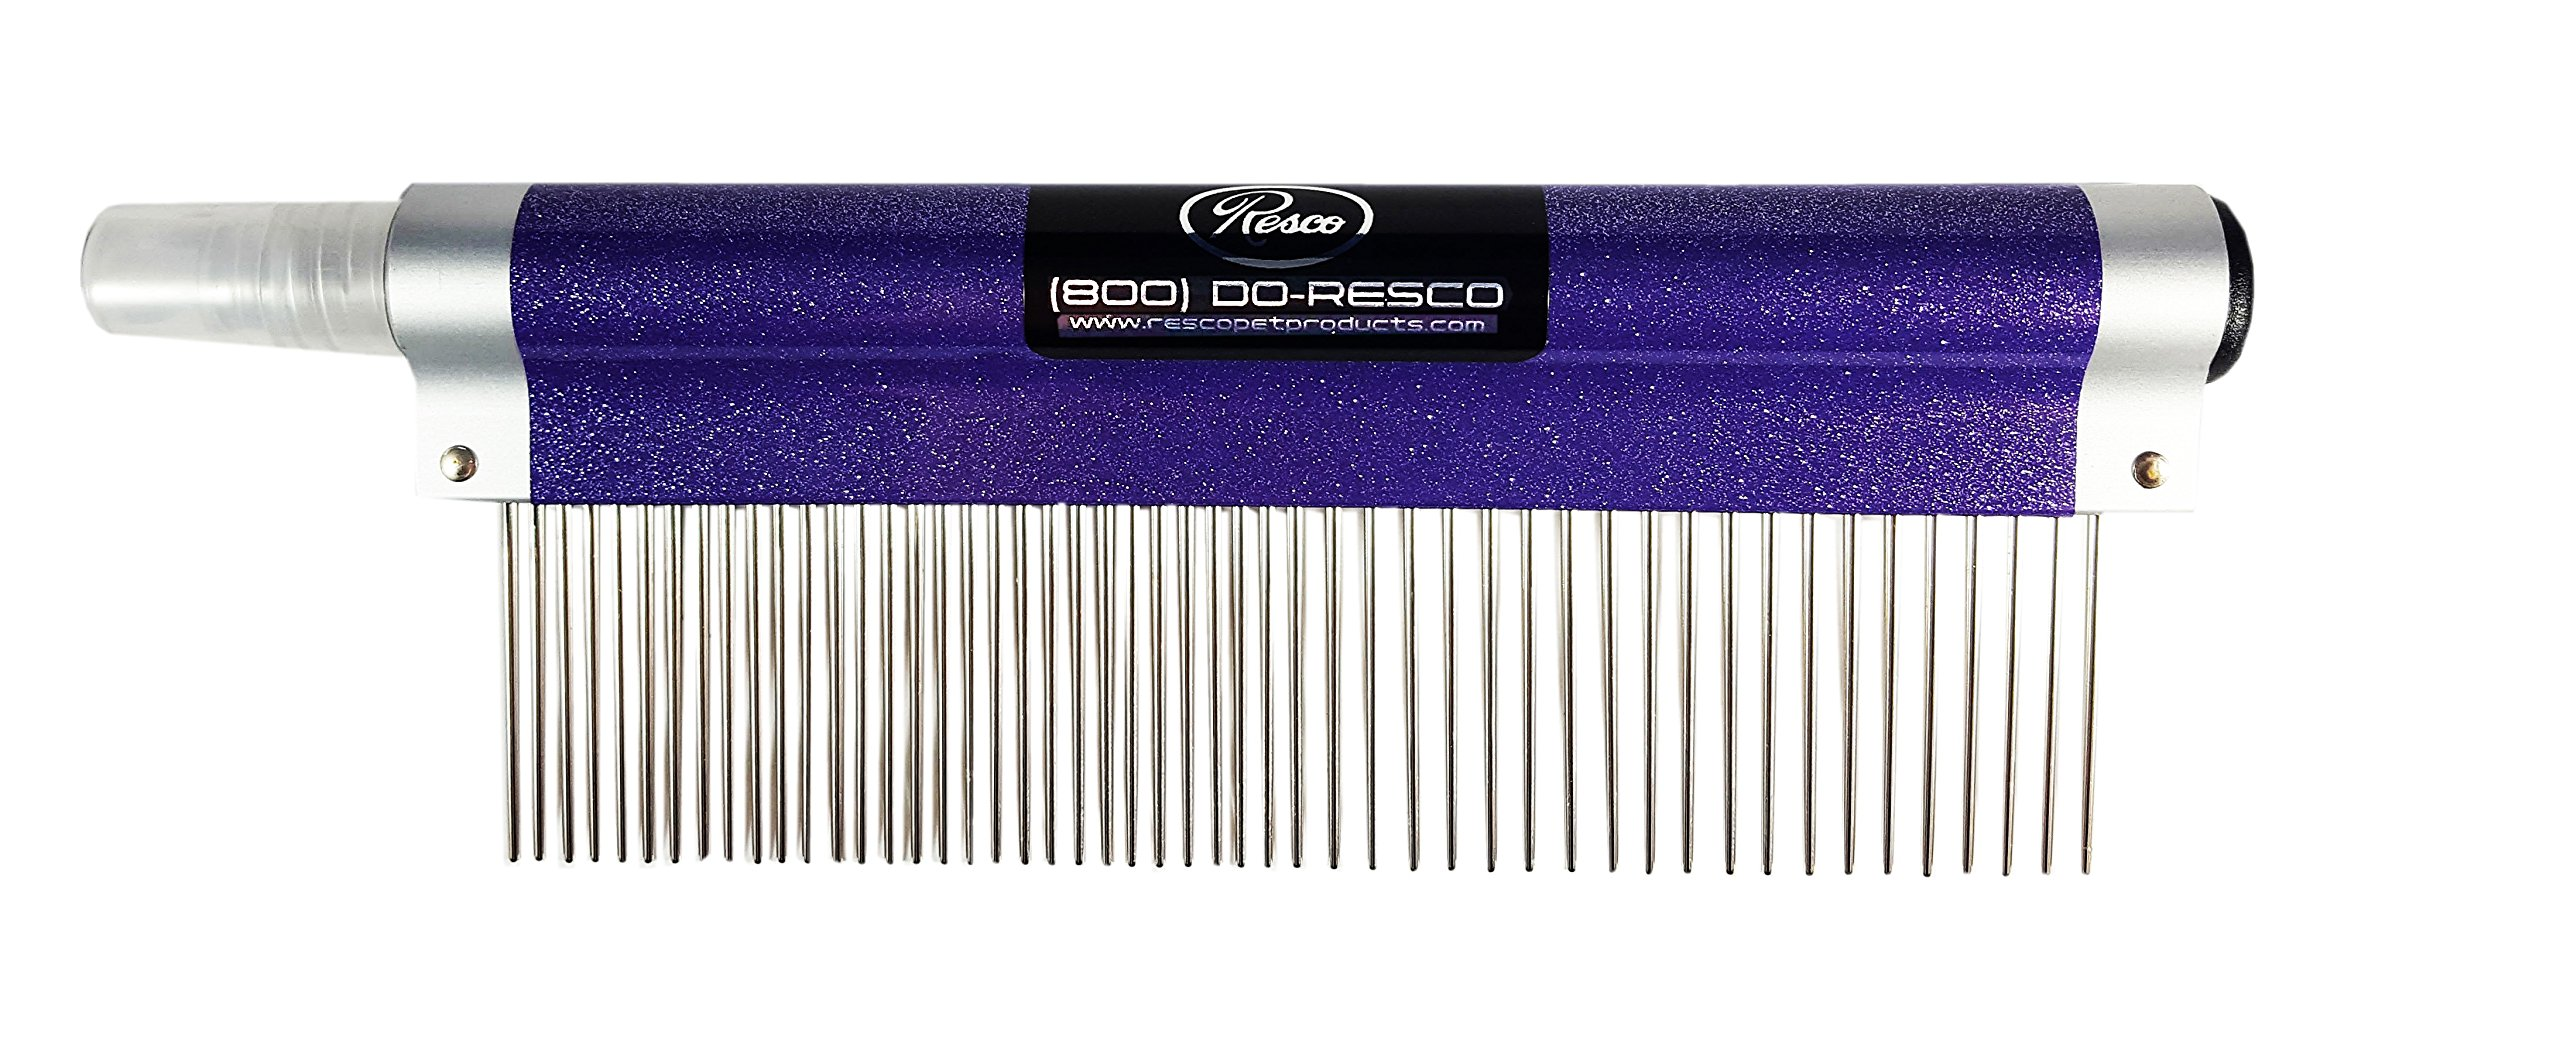 Resco USA-MADE Spritzer Comb for Pets, 1.5'' Combination, Sparkle Purple, Includes Detangler and Finishing Spray